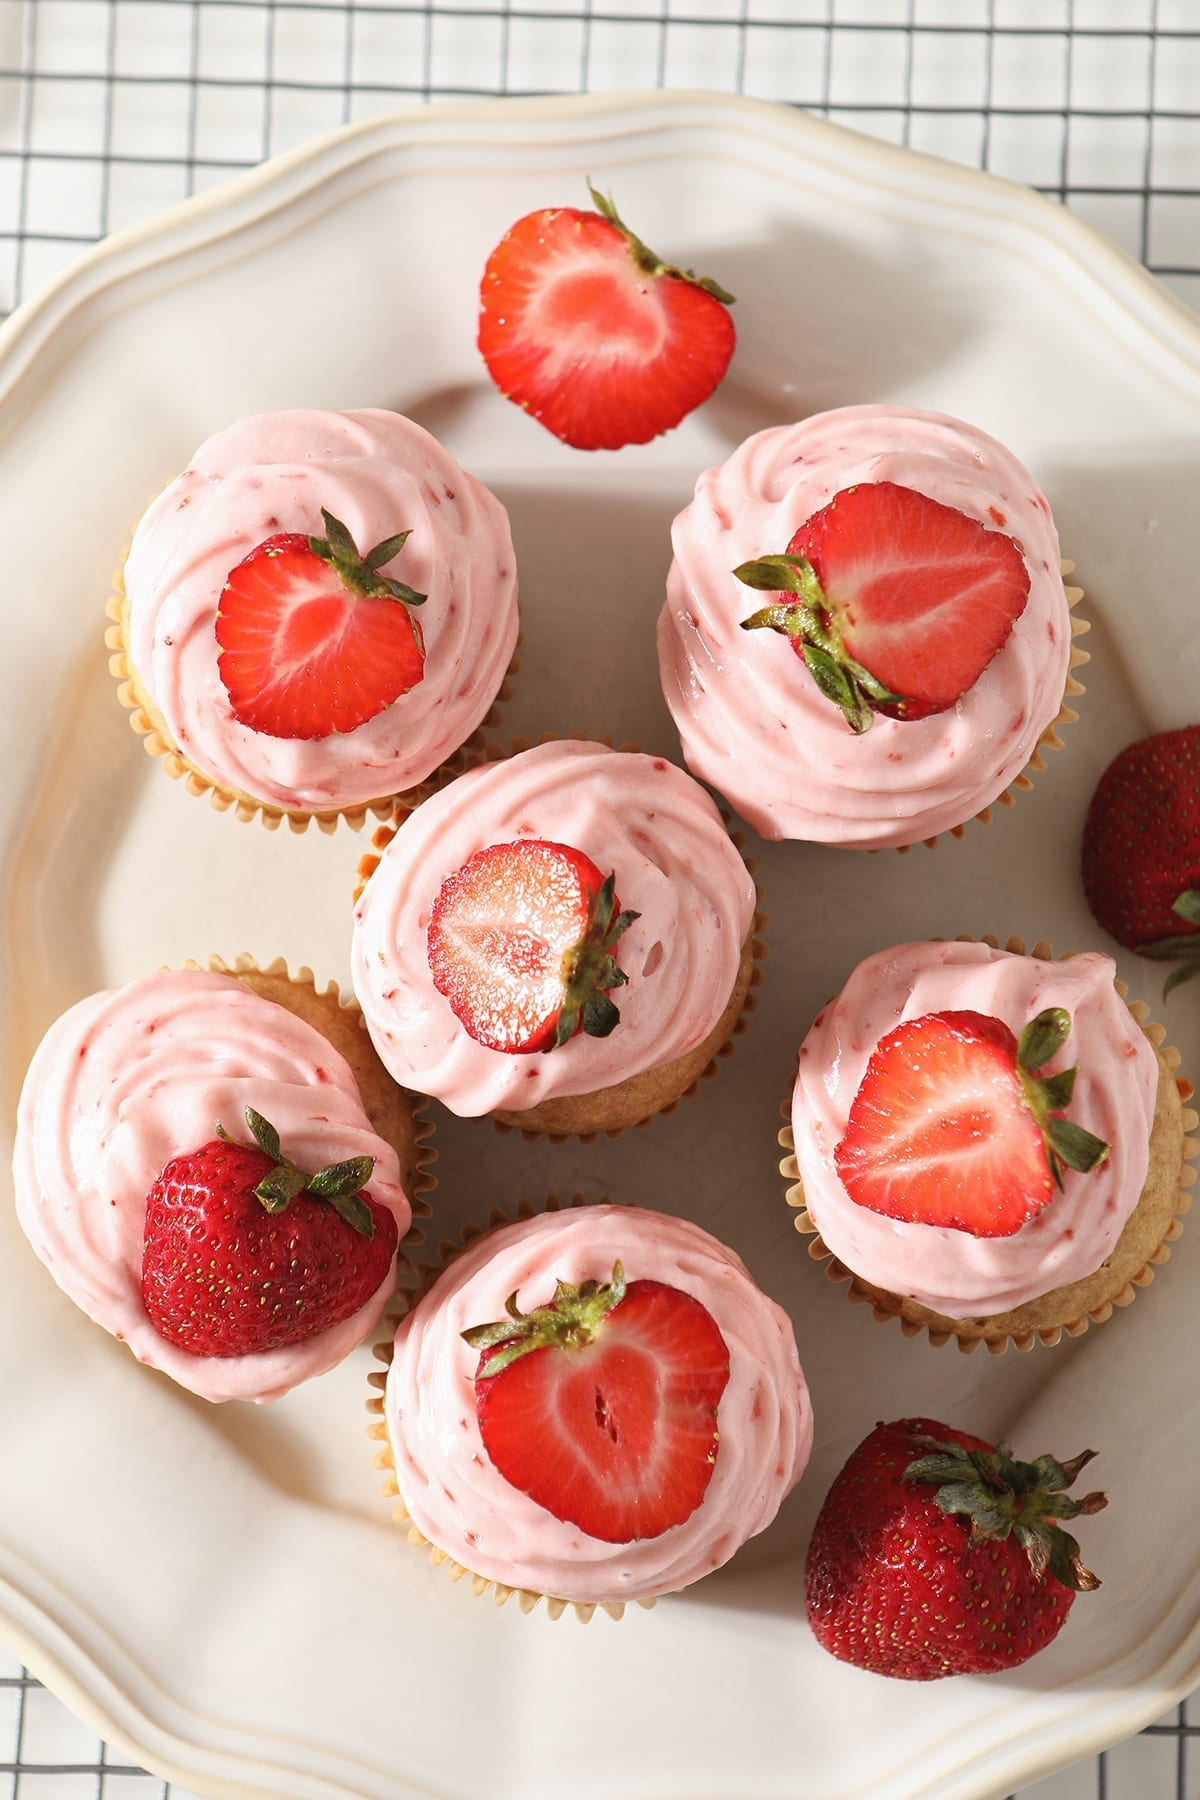 Overhead of a white platter holding six decorated Strawberry Cupcakes